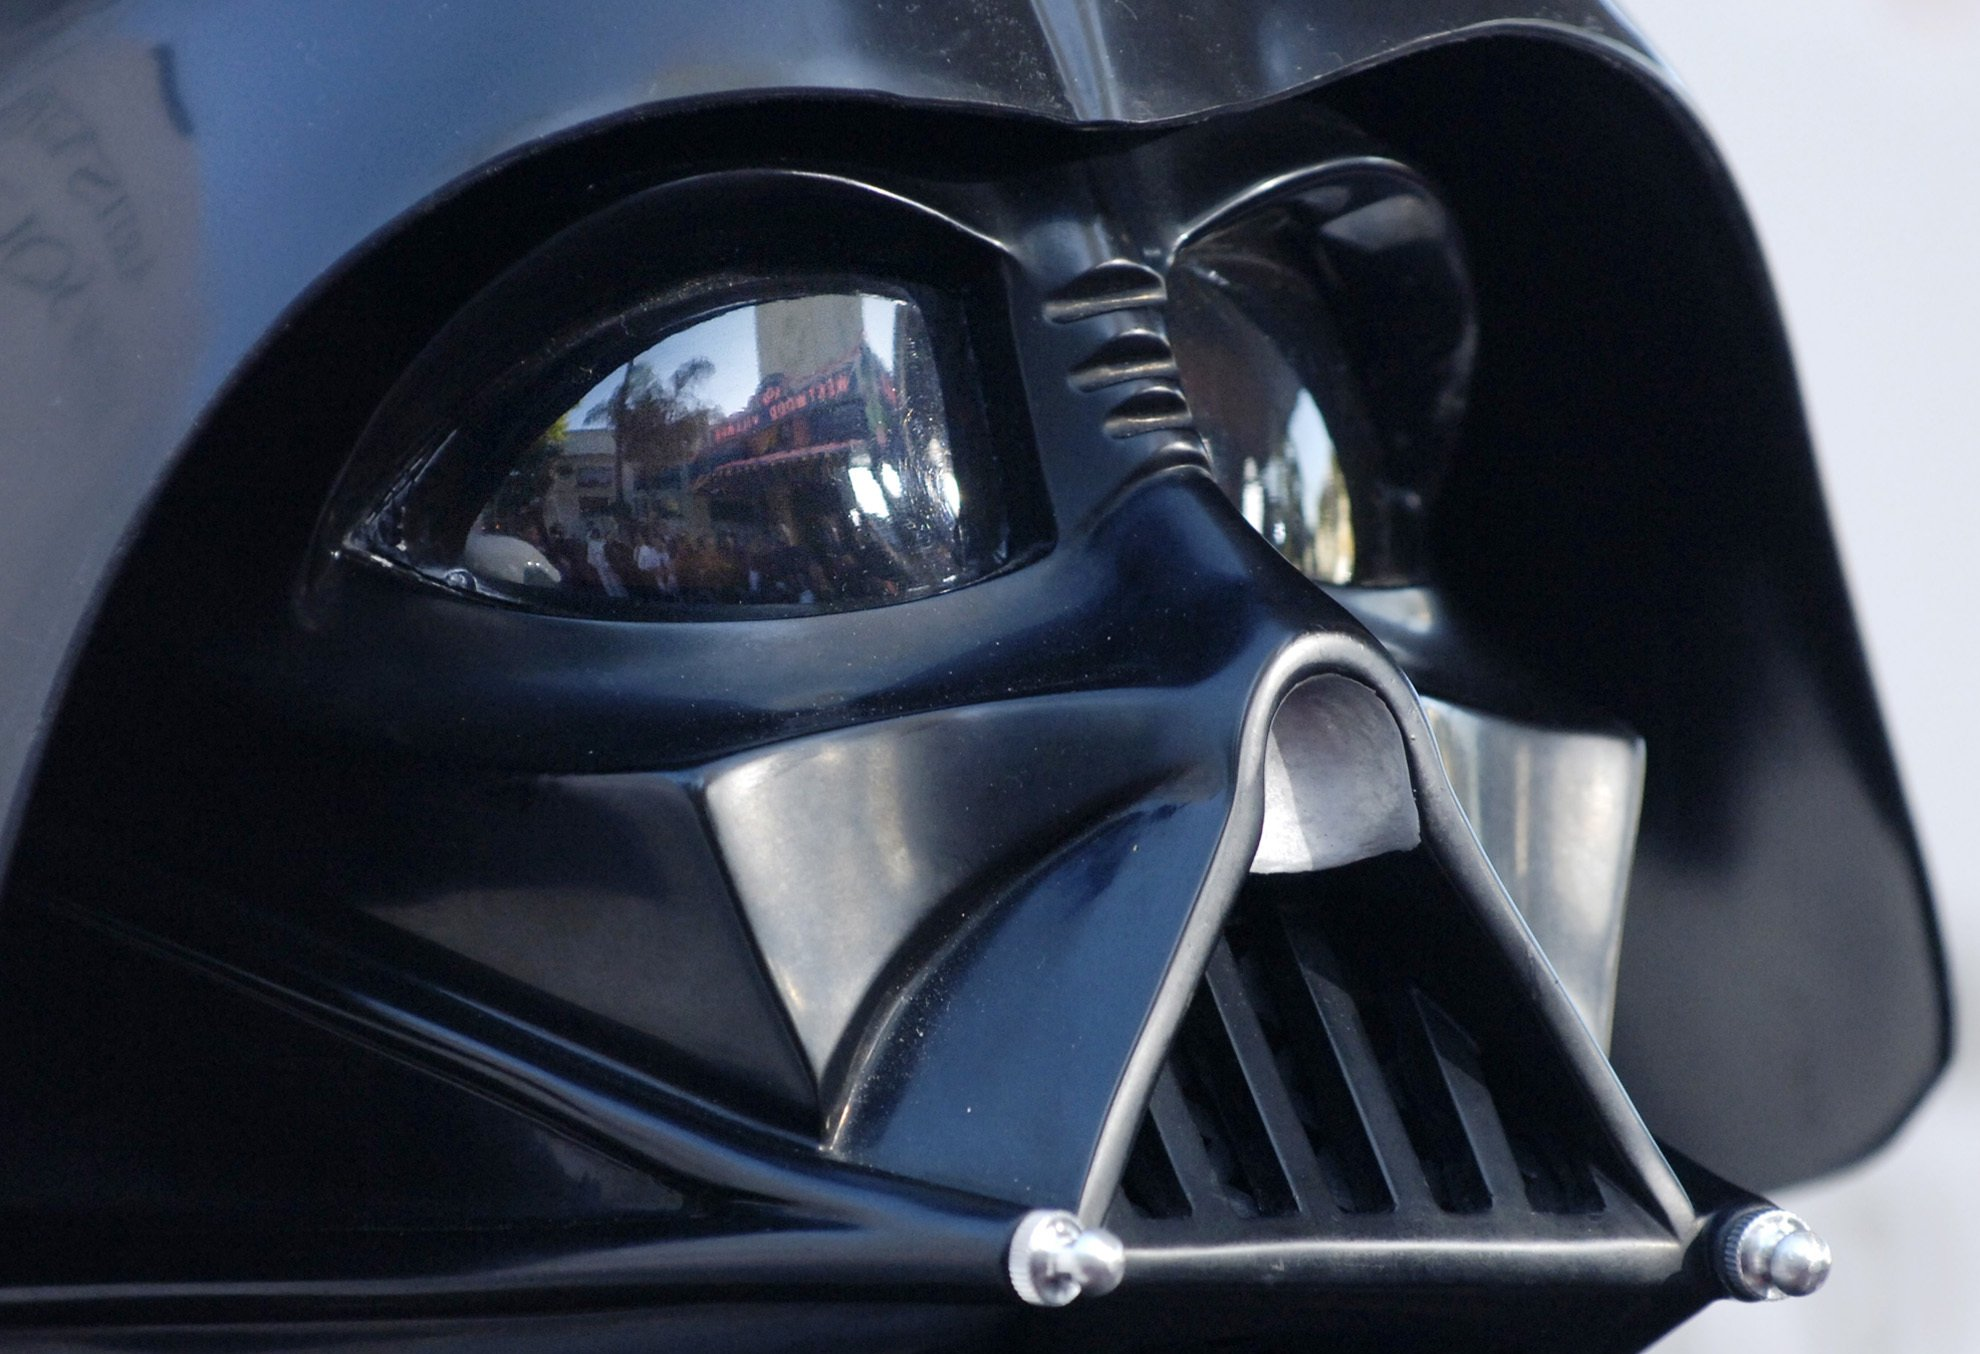 Dave Prowse, actor who played Darth Vader, dies at 85